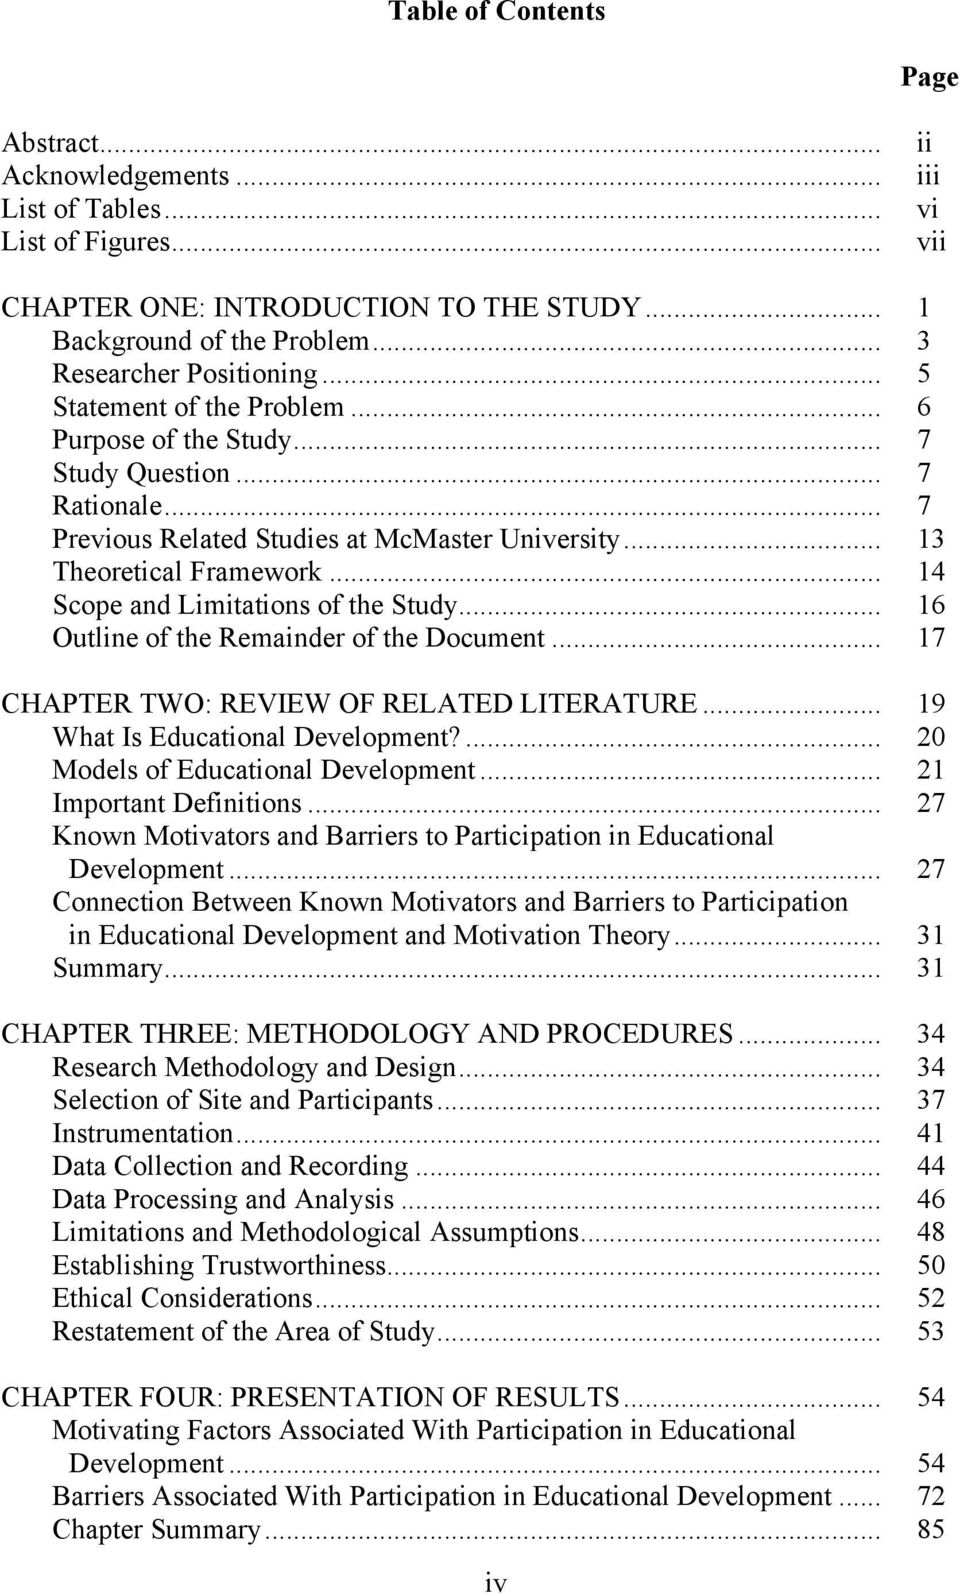 .. 14 Scope and Limitations of the Study... 16 Outline of the Remainder of the Document... 17 CHAPTER TWO: REVIEW OF RELATED LITERATURE... 19 What Is Educational Development?